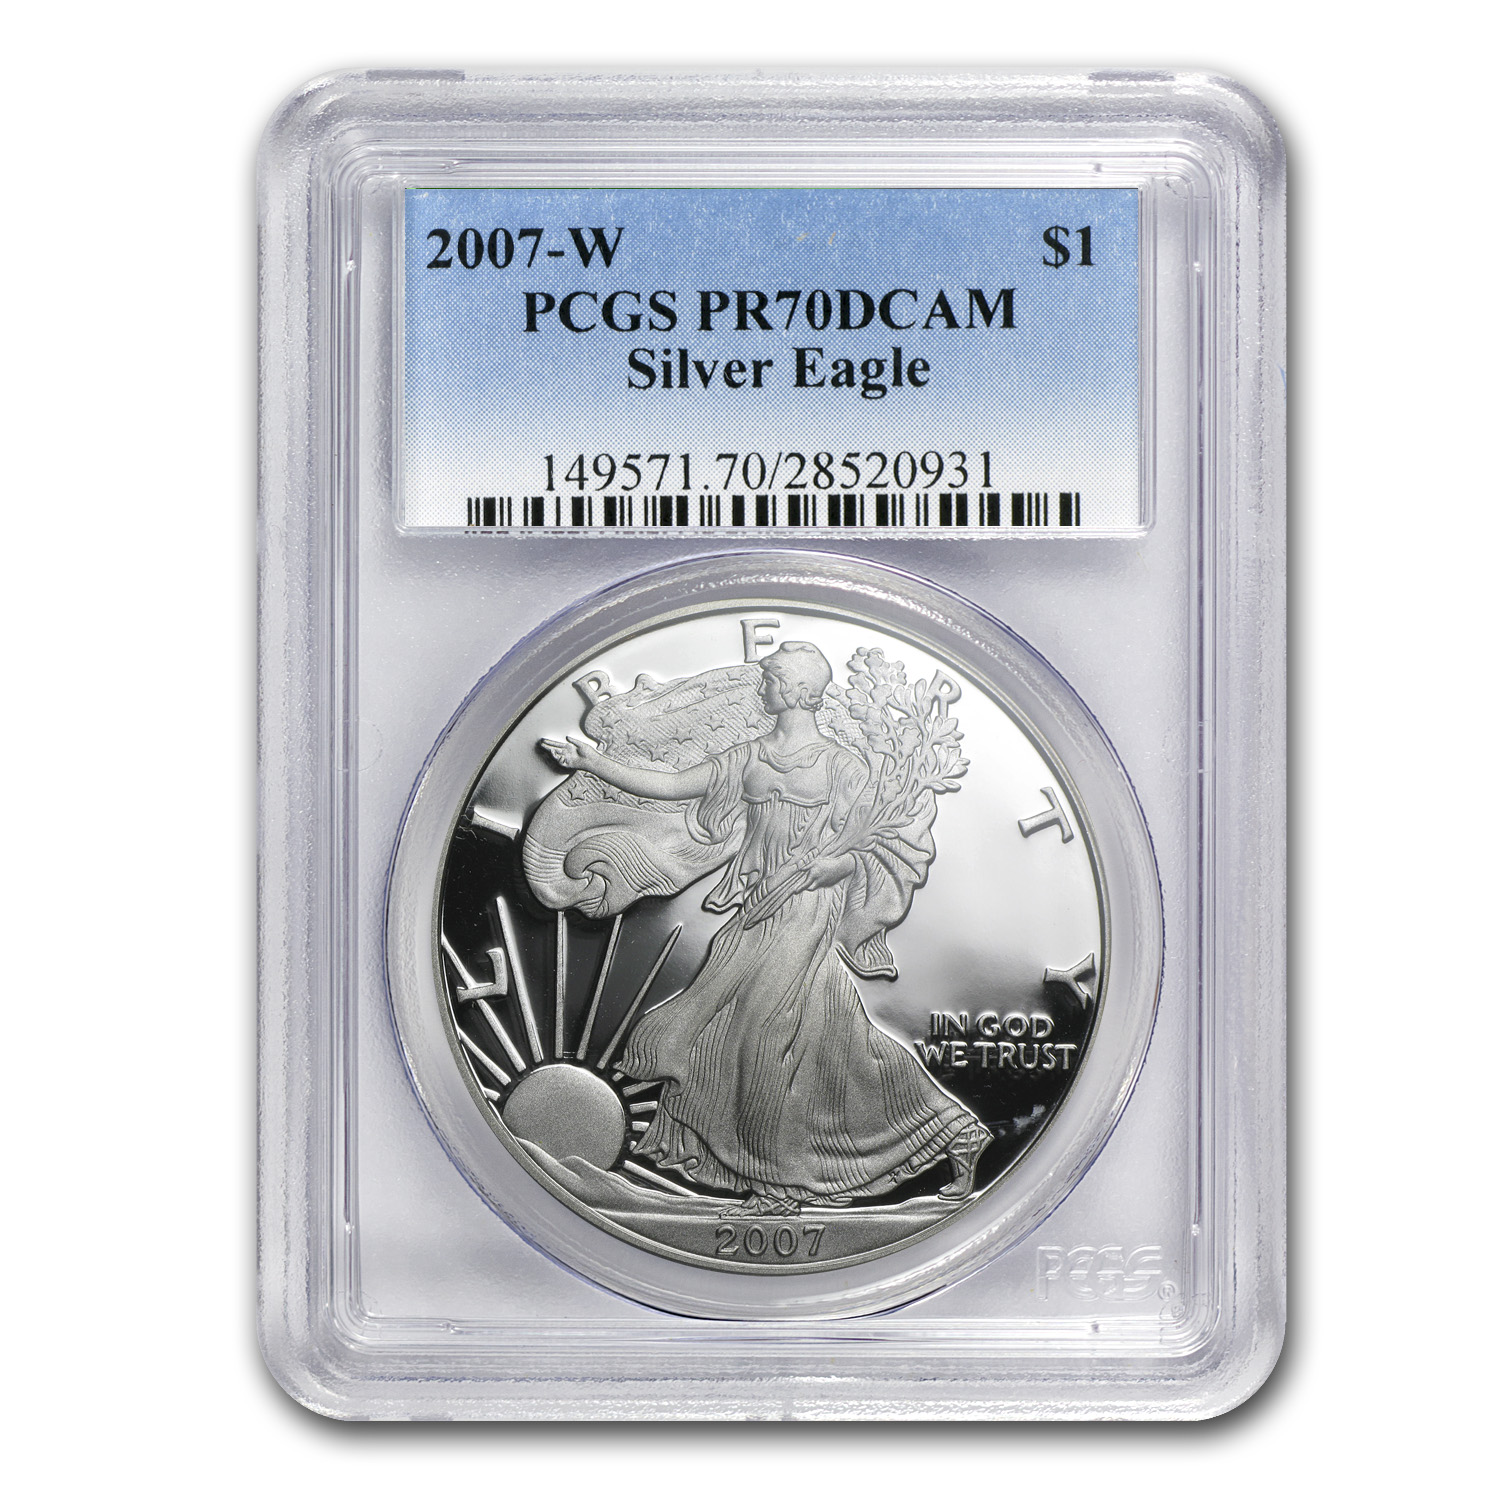 2007-W Proof Silver American Eagle PR-70 PCGS